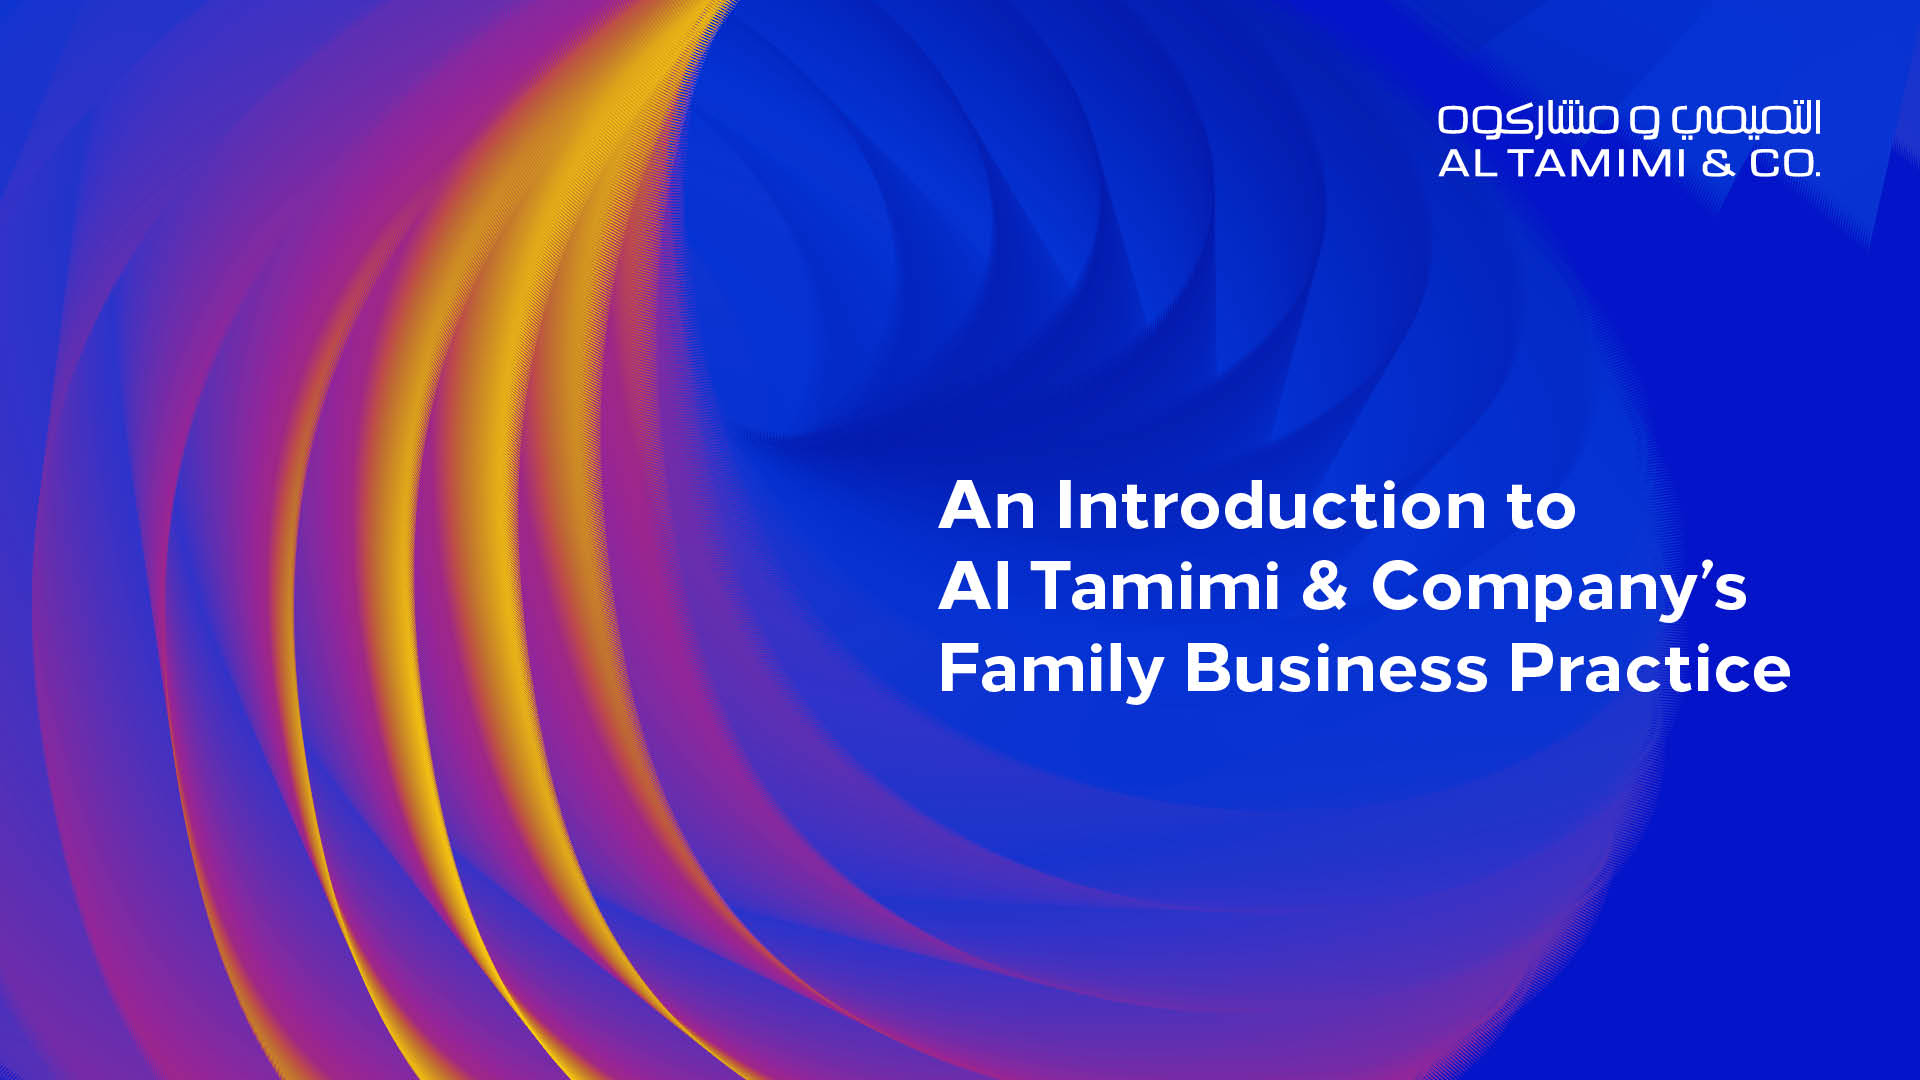 An Introduction to our Family Business Practice